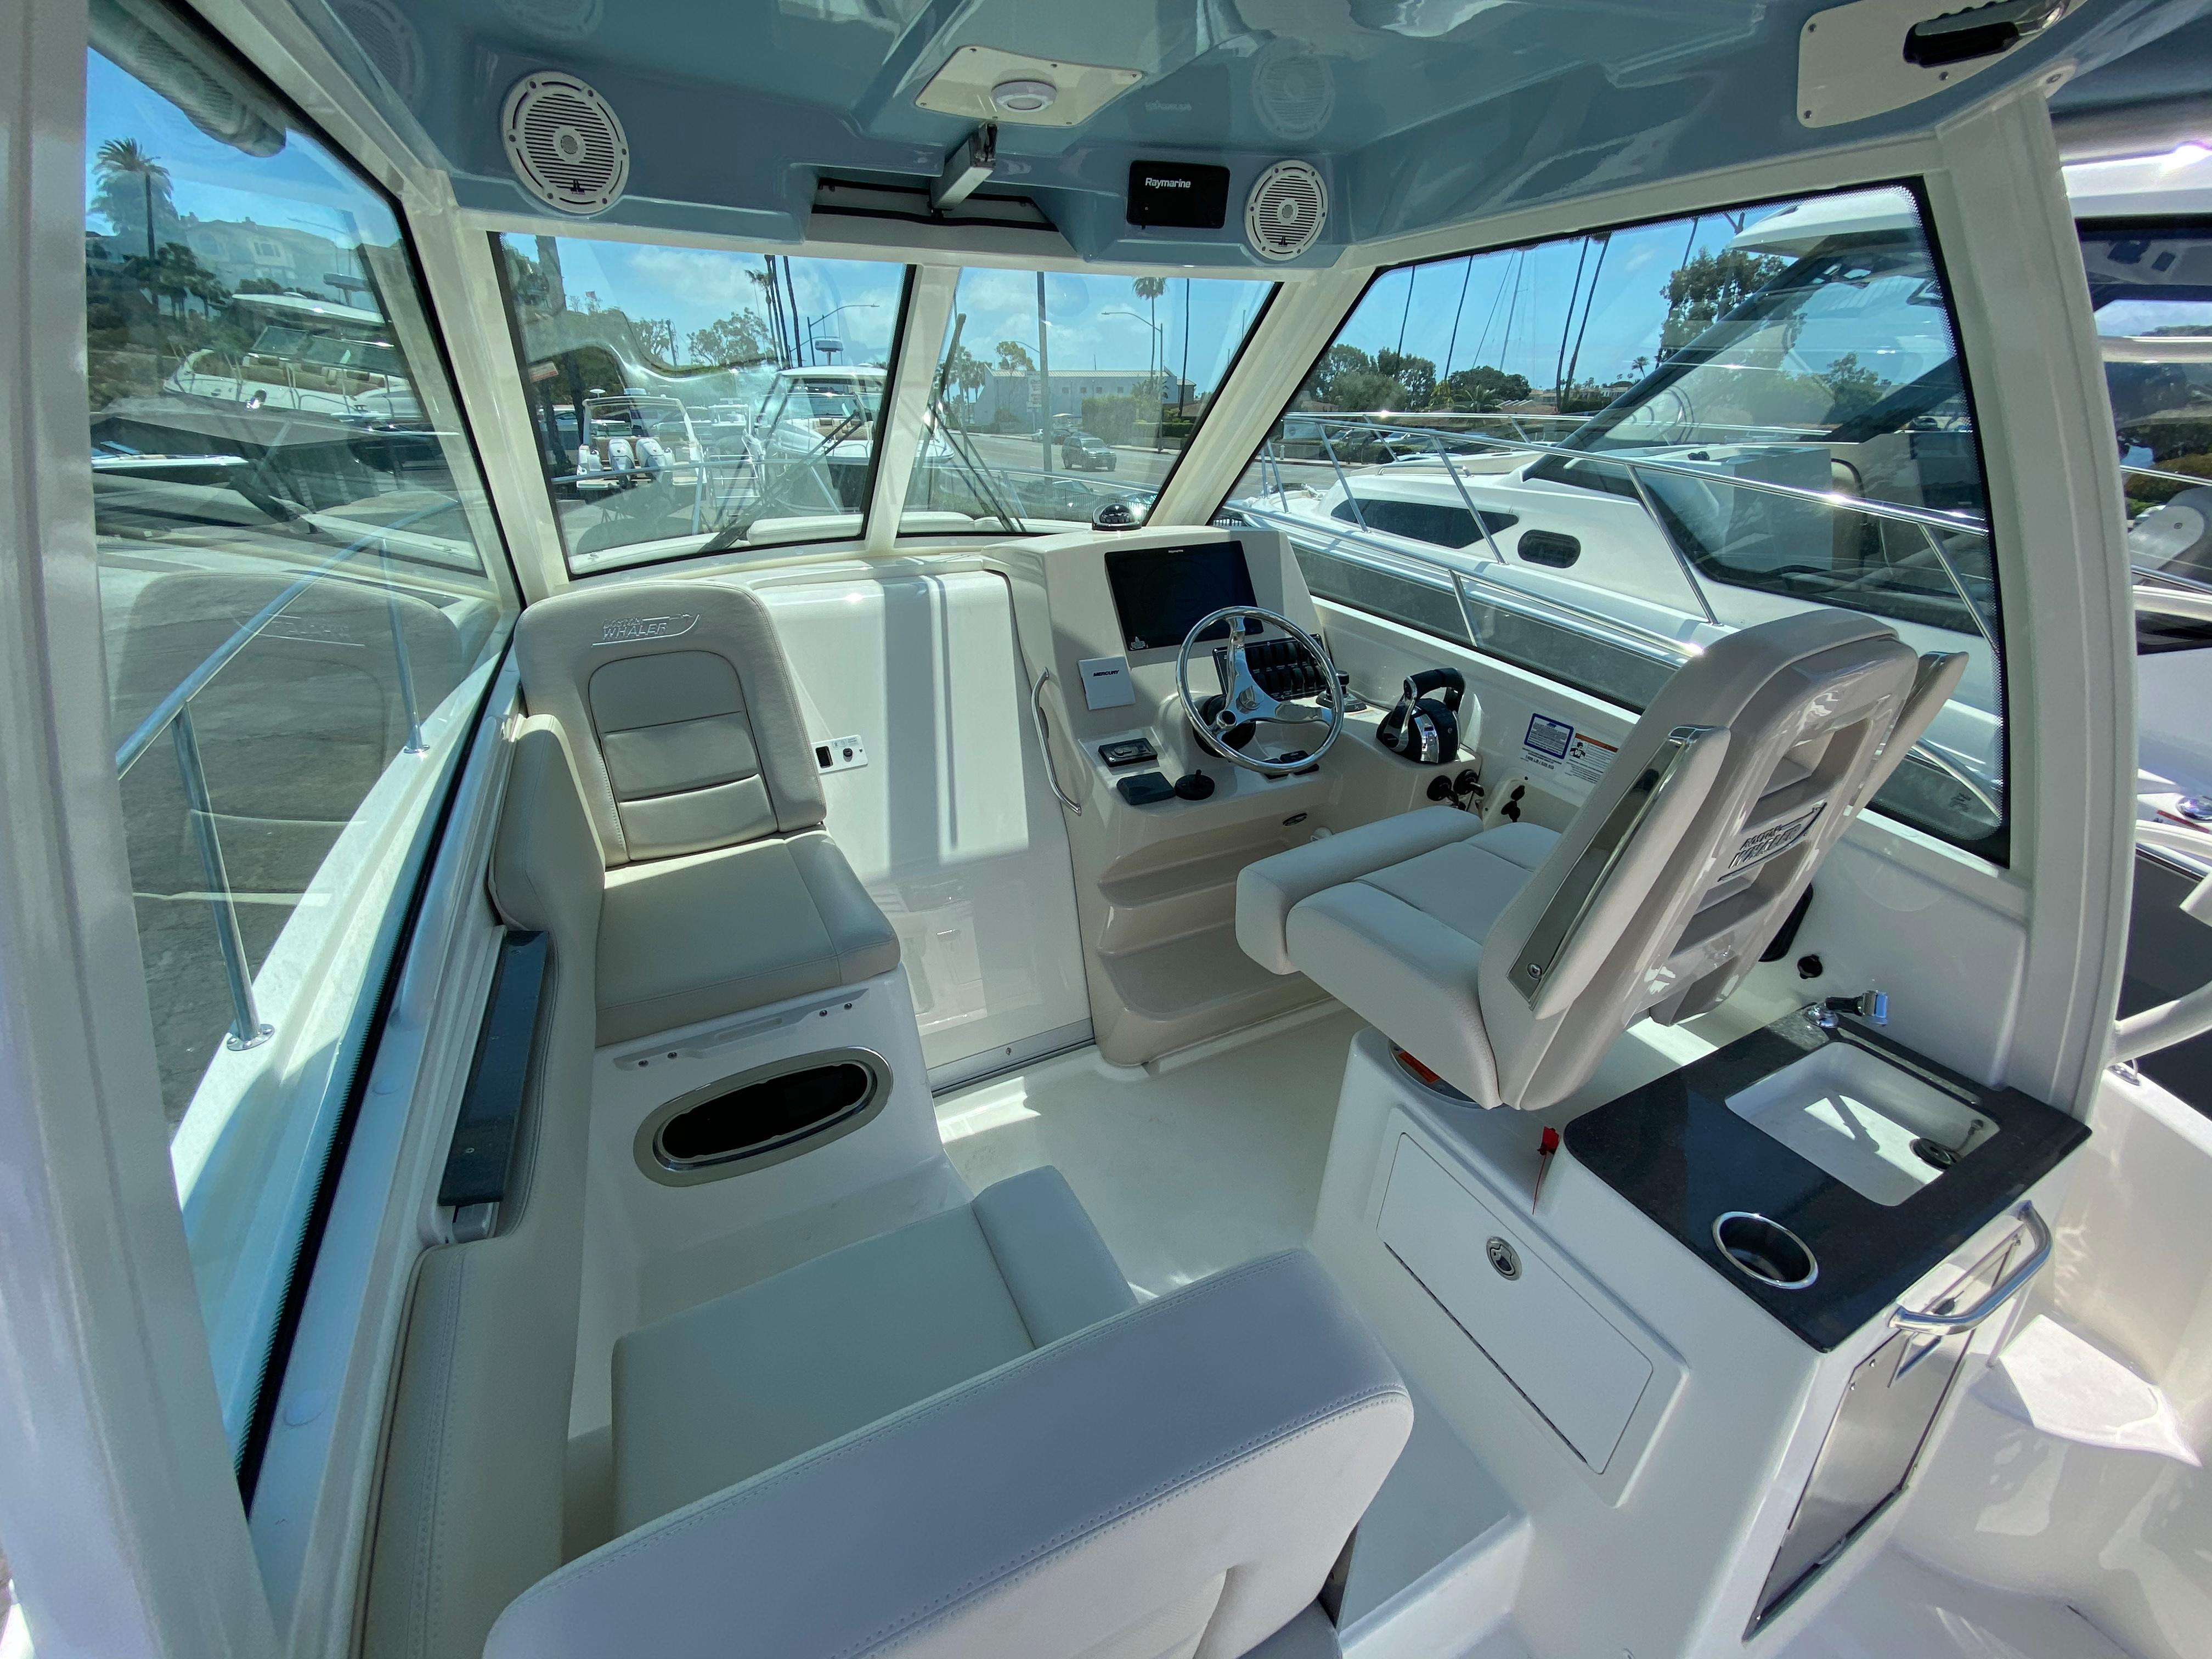 2021 Boston Whaler 285 Conquest #BW1805B inventory image at Sun Country Coastal in San Diego